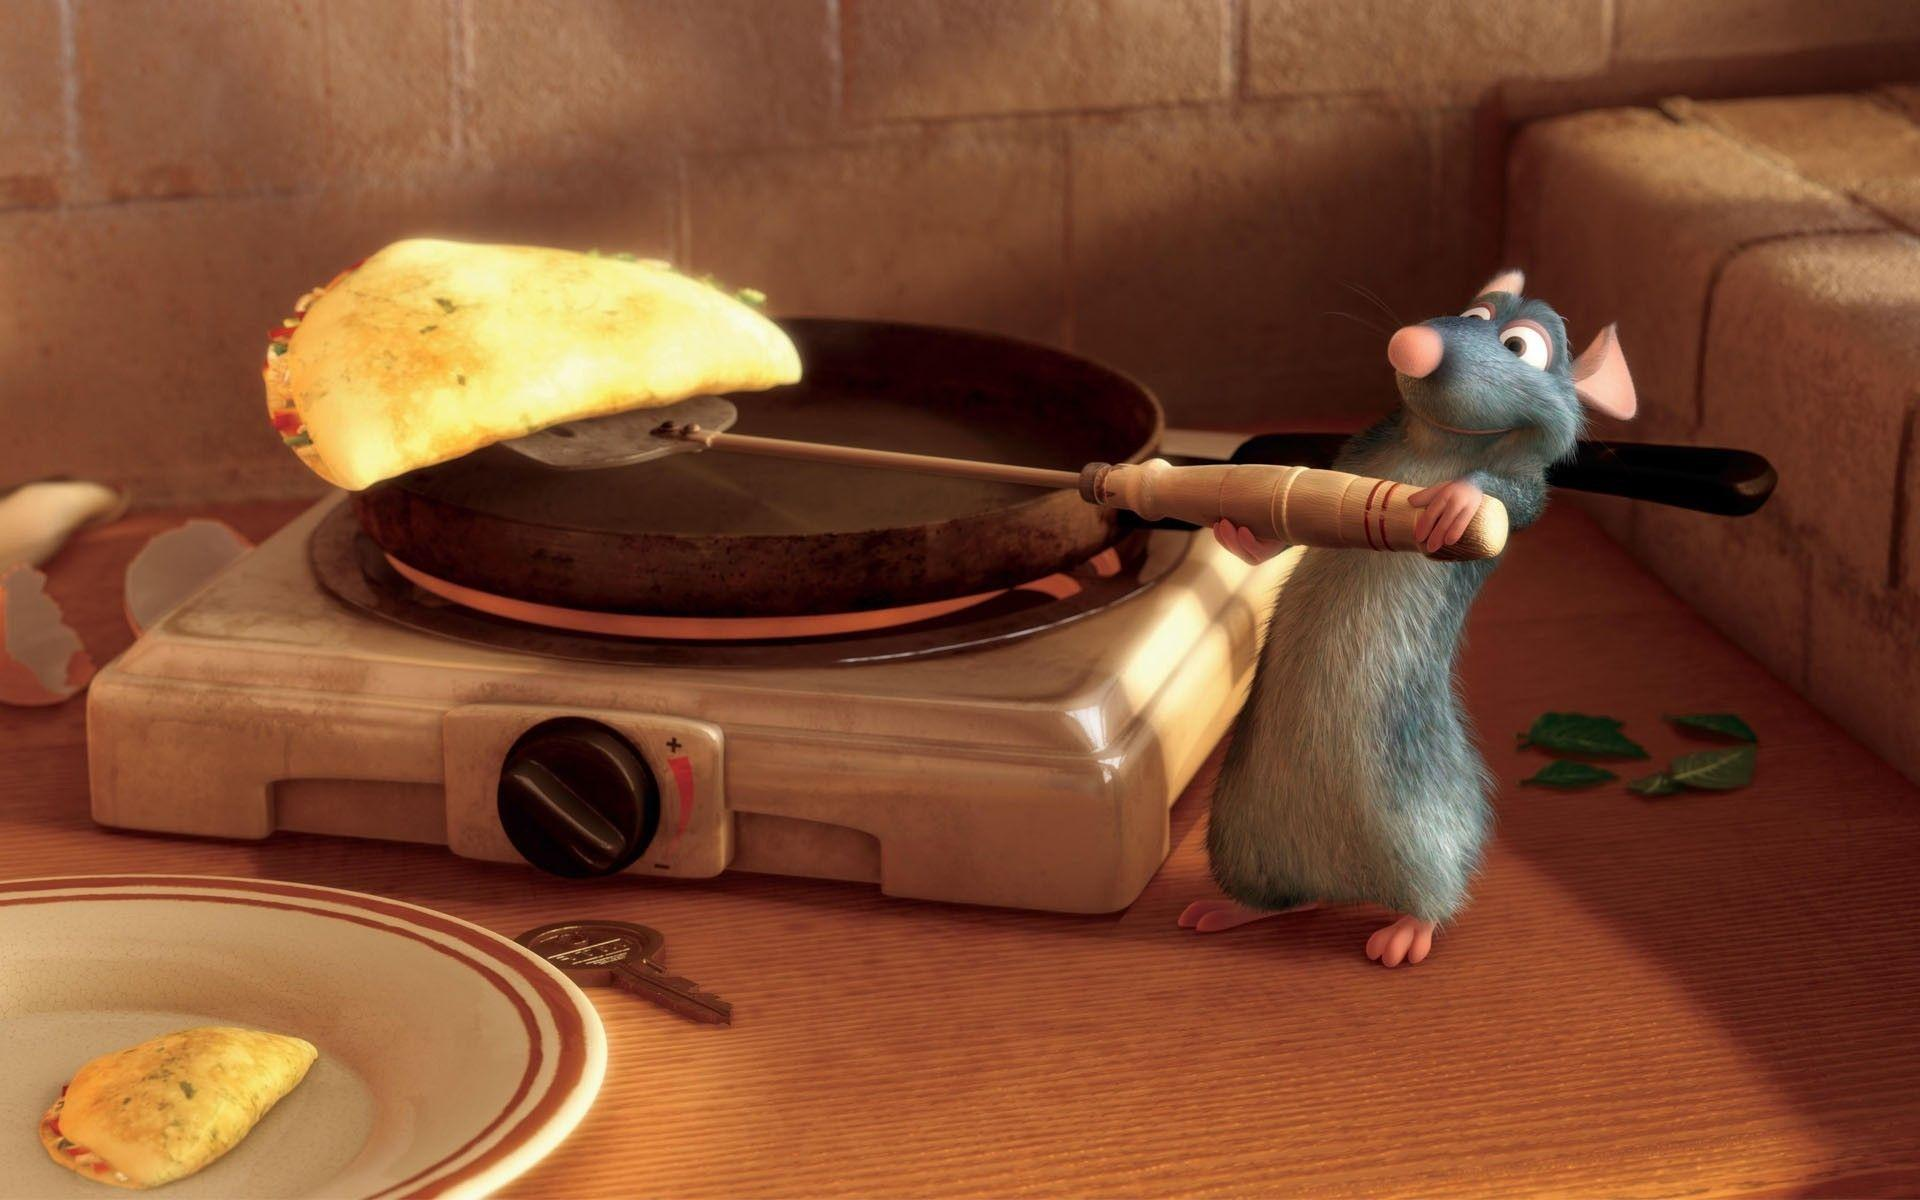 ratatouille movie essay From his review of ratatouille: free shipping on ratatouille movie essay qualifying offers 14-7-2018 michael barrier -- exploring the world of animated films and comic art 26-6-2018 a recurring item astrosynthesis data found across several works for a director, producer or writer.